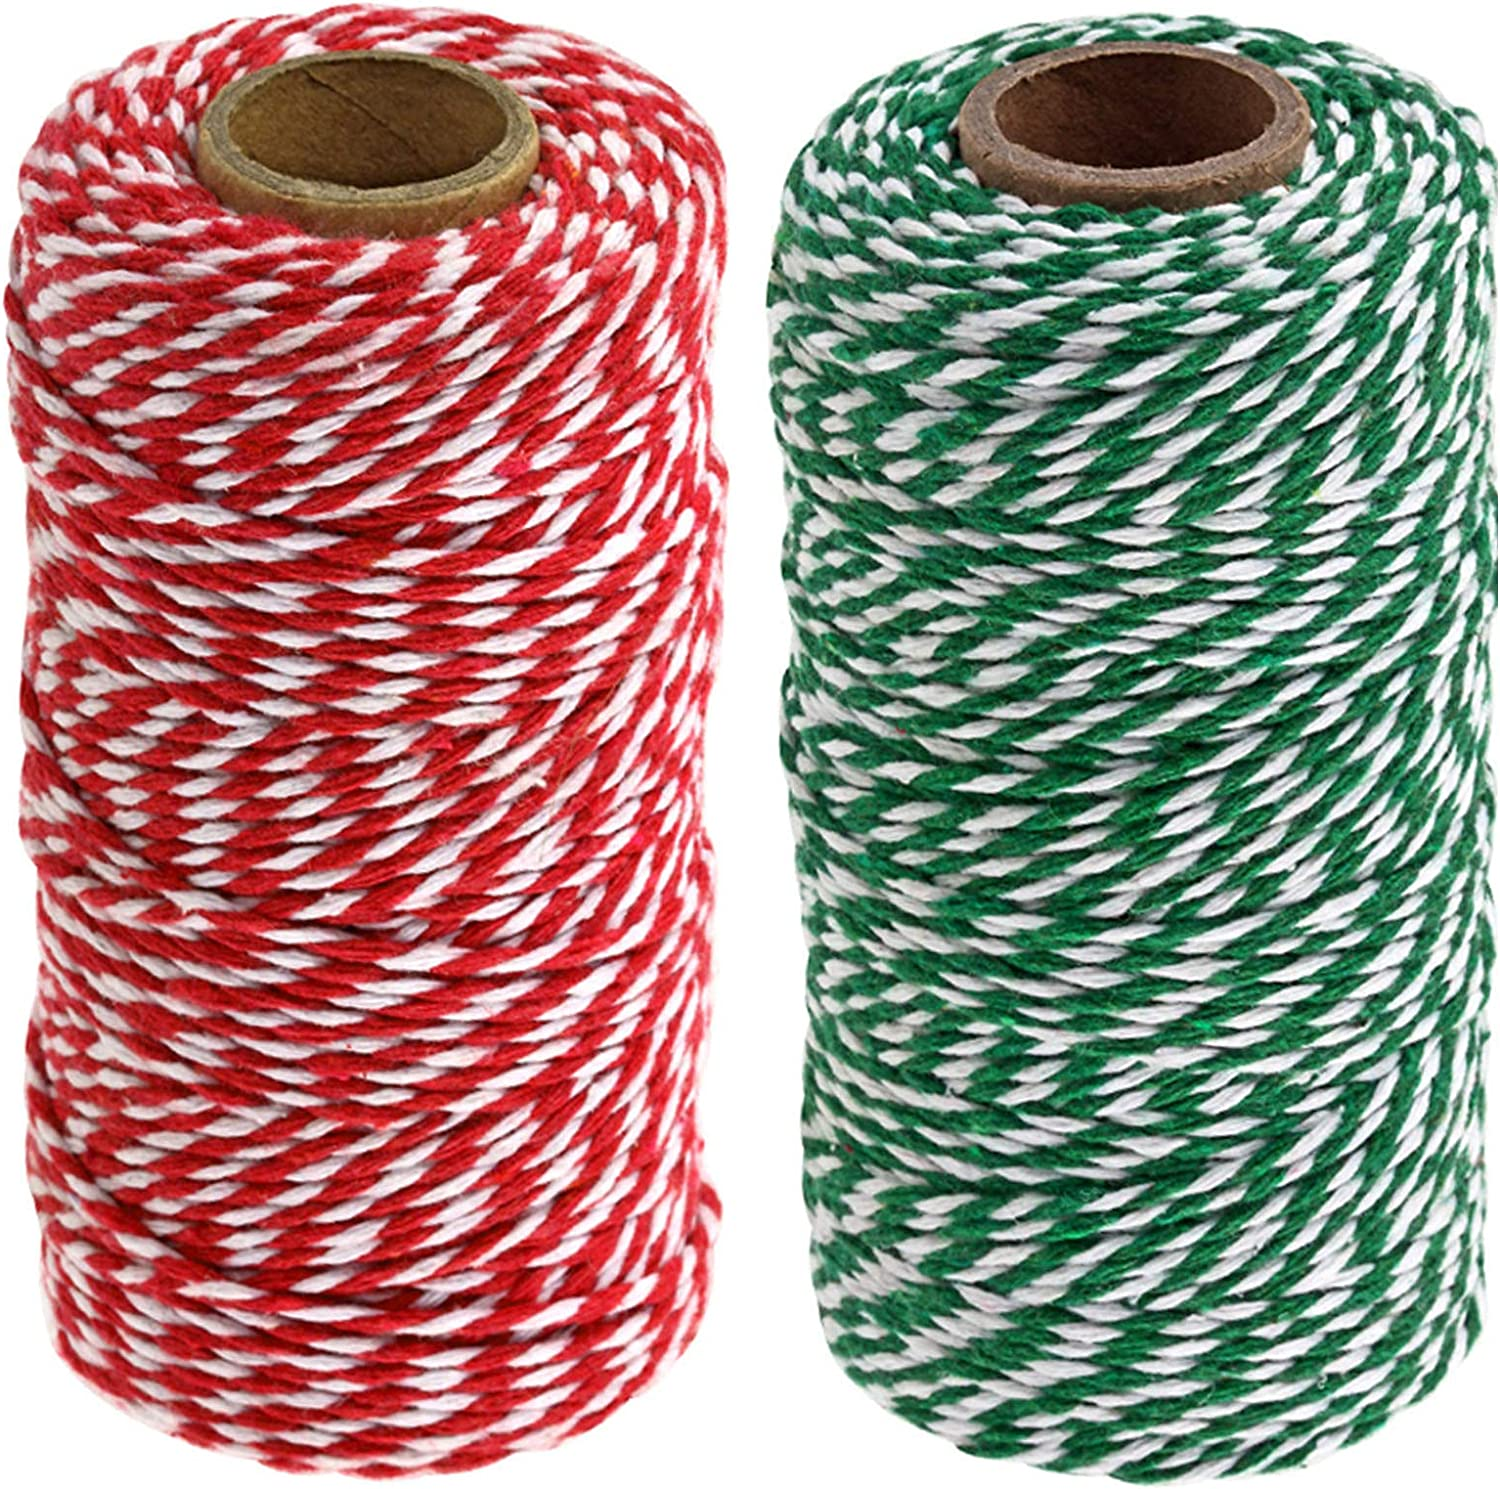 UNIQUEED Christmas Cotton Twine String Feet S Holiday 328 Super-cheap Spring new work one after another